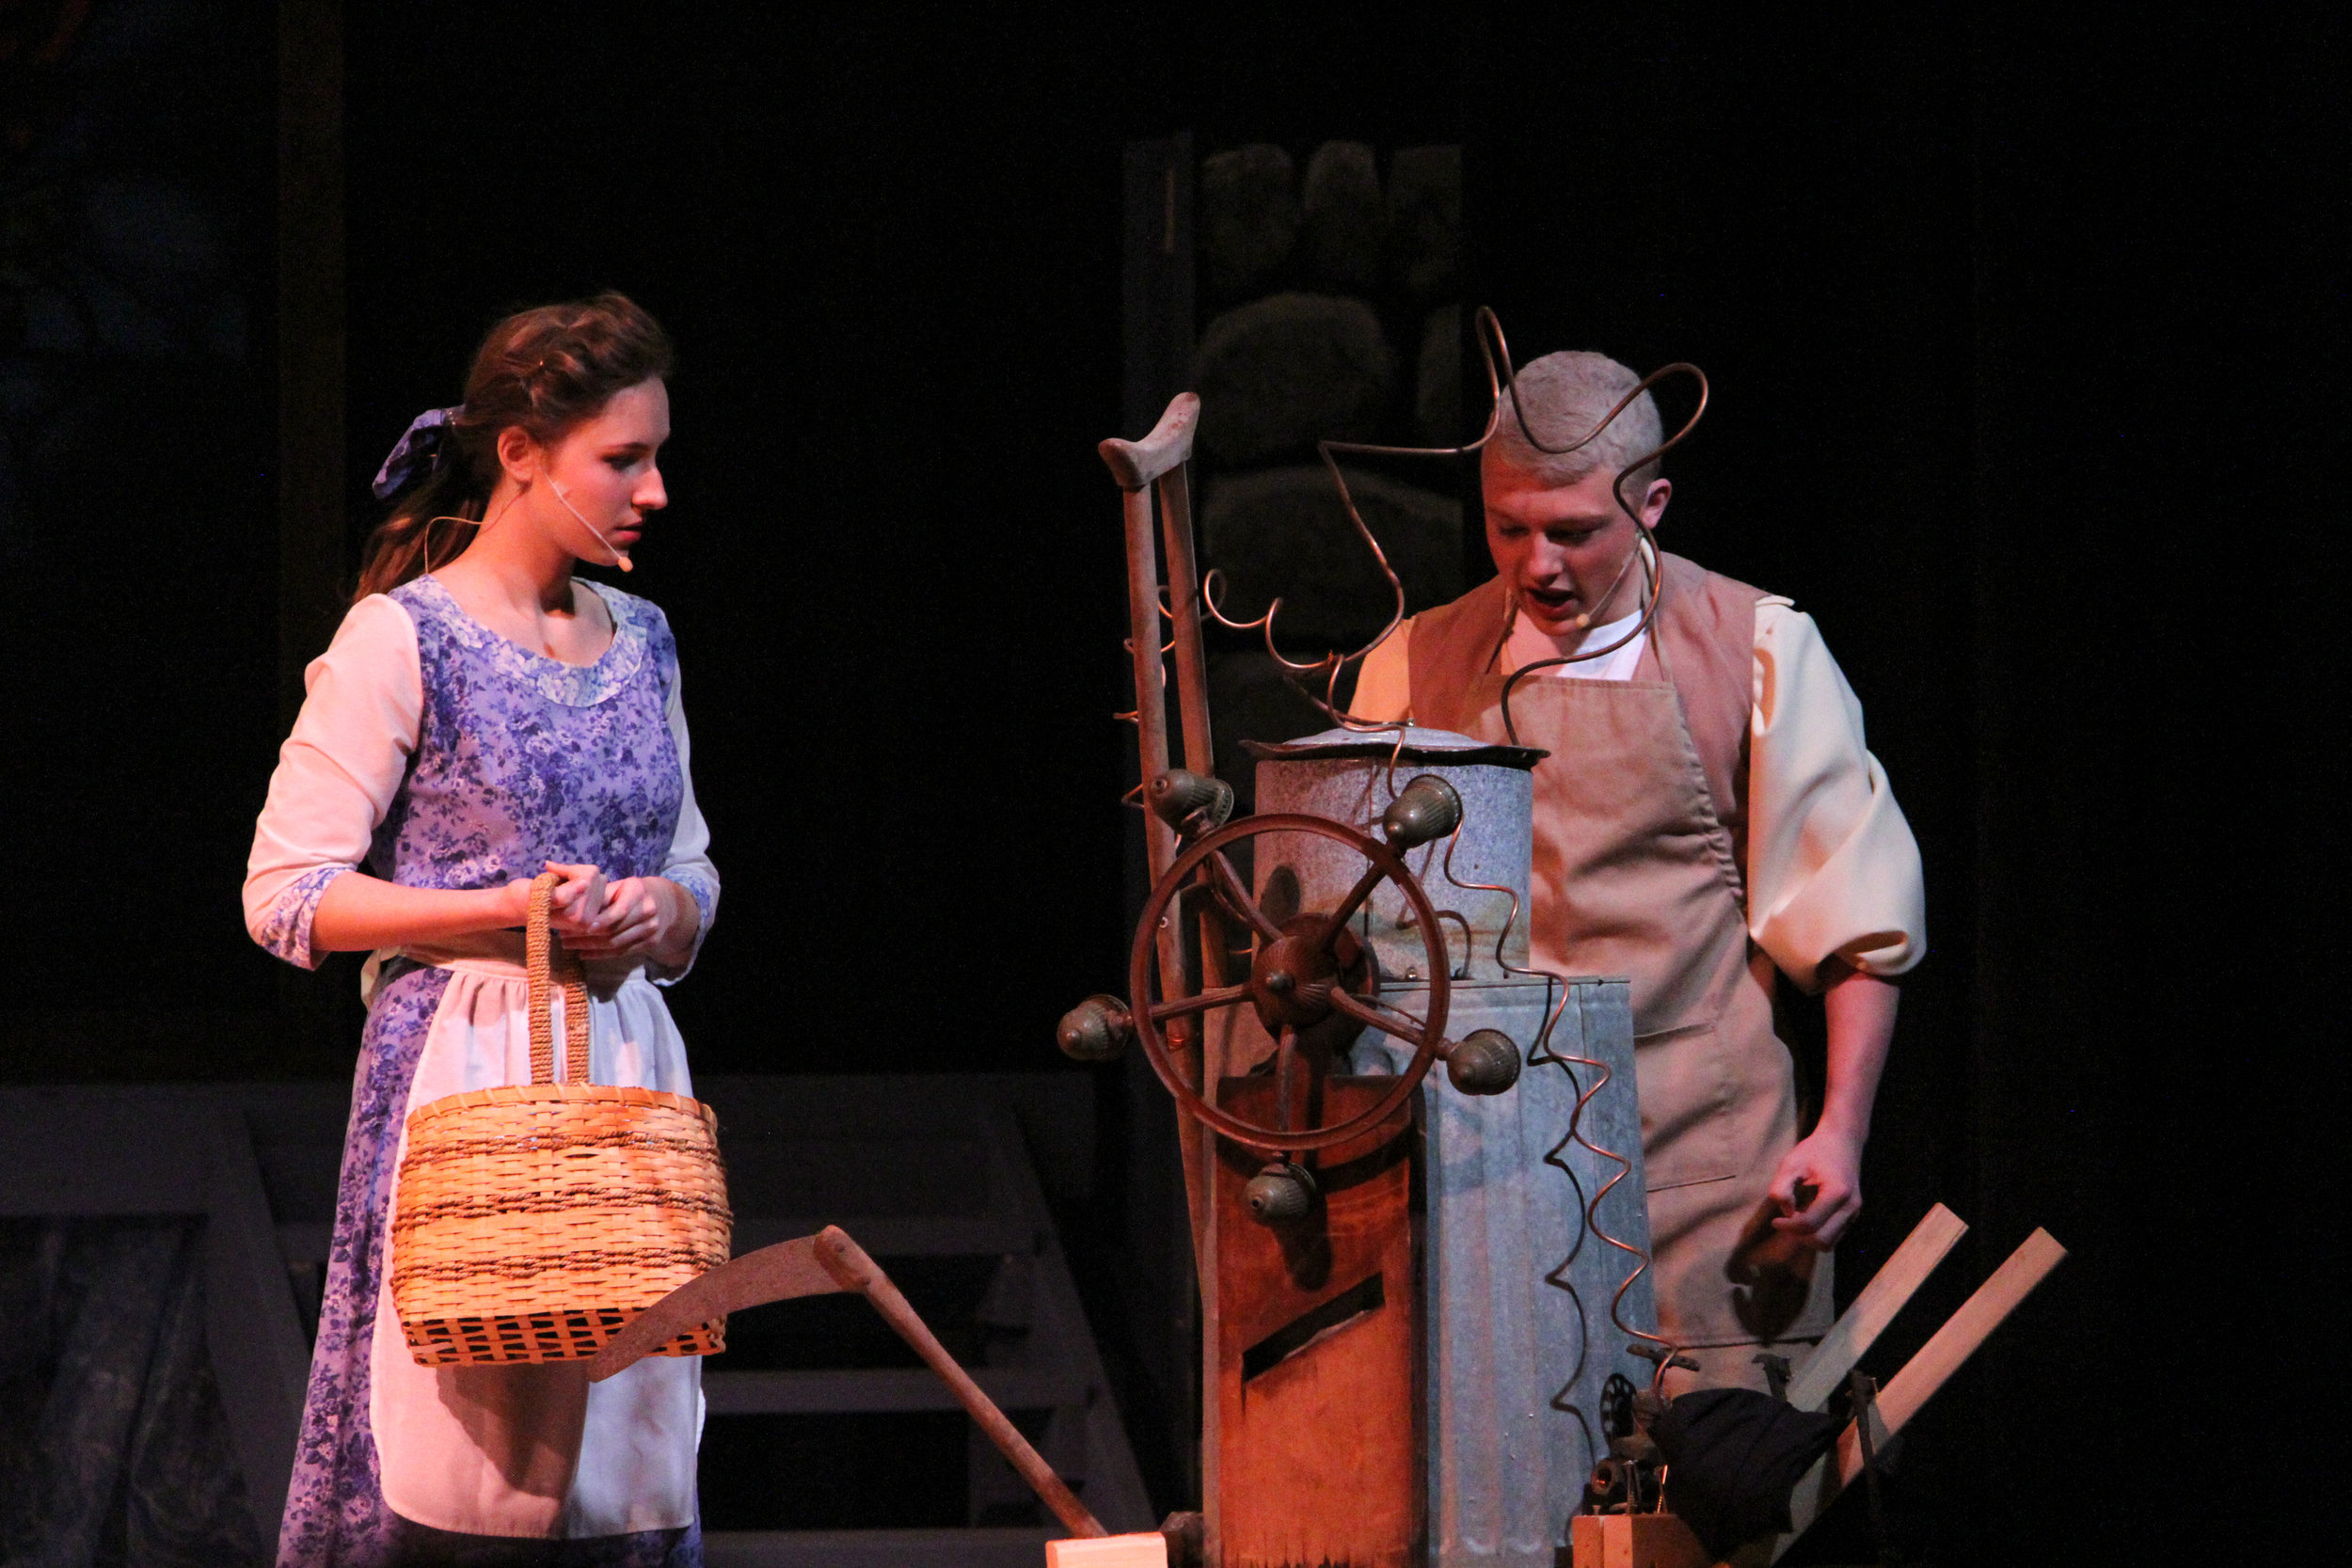 Belle ( Emily Powell, senior ) and her father Maurice ( Harrison Keenan, senior ) discuss the contraption Maurice is building before he heads out to a fair to present his work, on his way he comes across Beast's castle where inside he meets Lumiere the candlestick Cogsworth the clock, Mrs. Potts the teapot and her son Chip the teacup. The offer him their service; however the Beast discovers and imprisons Maurice.